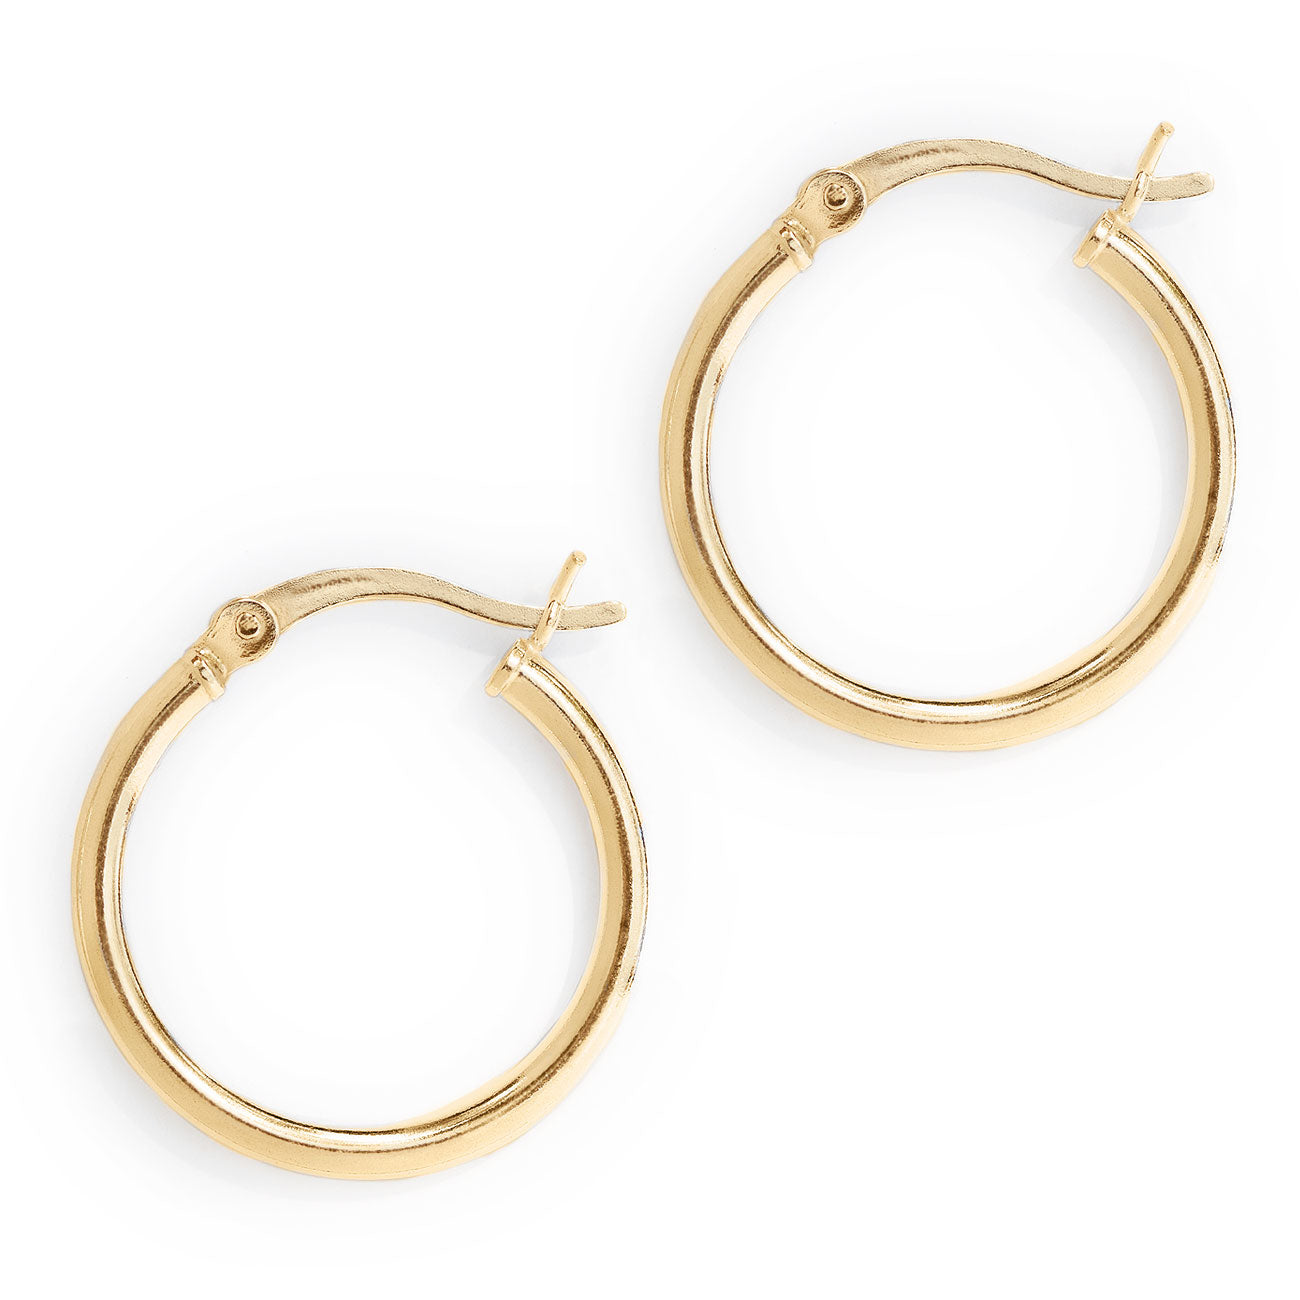 Gold Small Hoop Earrings with Latch